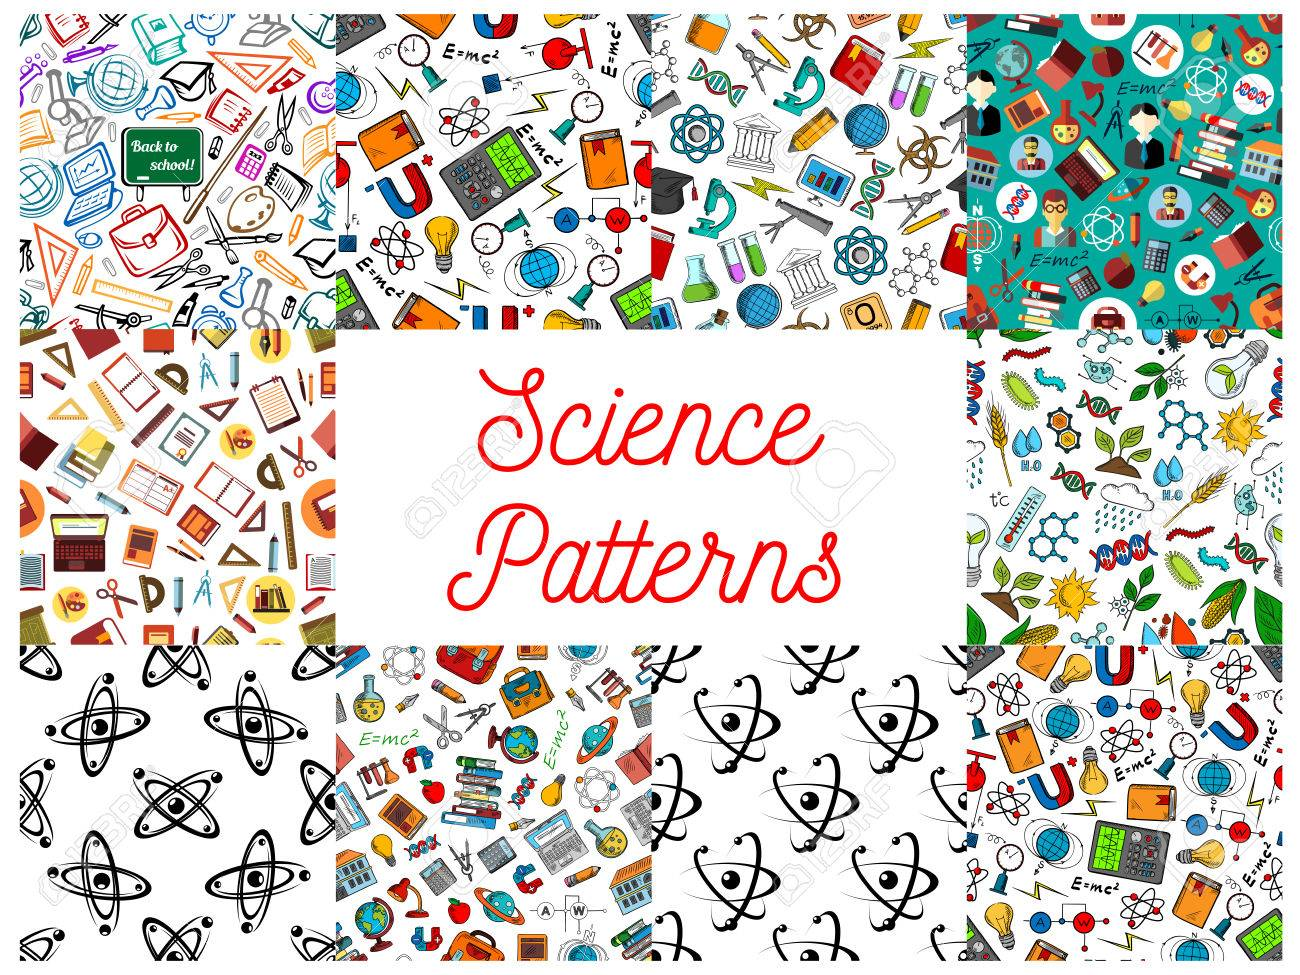 Science And Knowledge Seamless Backgrounds Wallpaper Patterns Of Microscope Atom Dna Chemicals